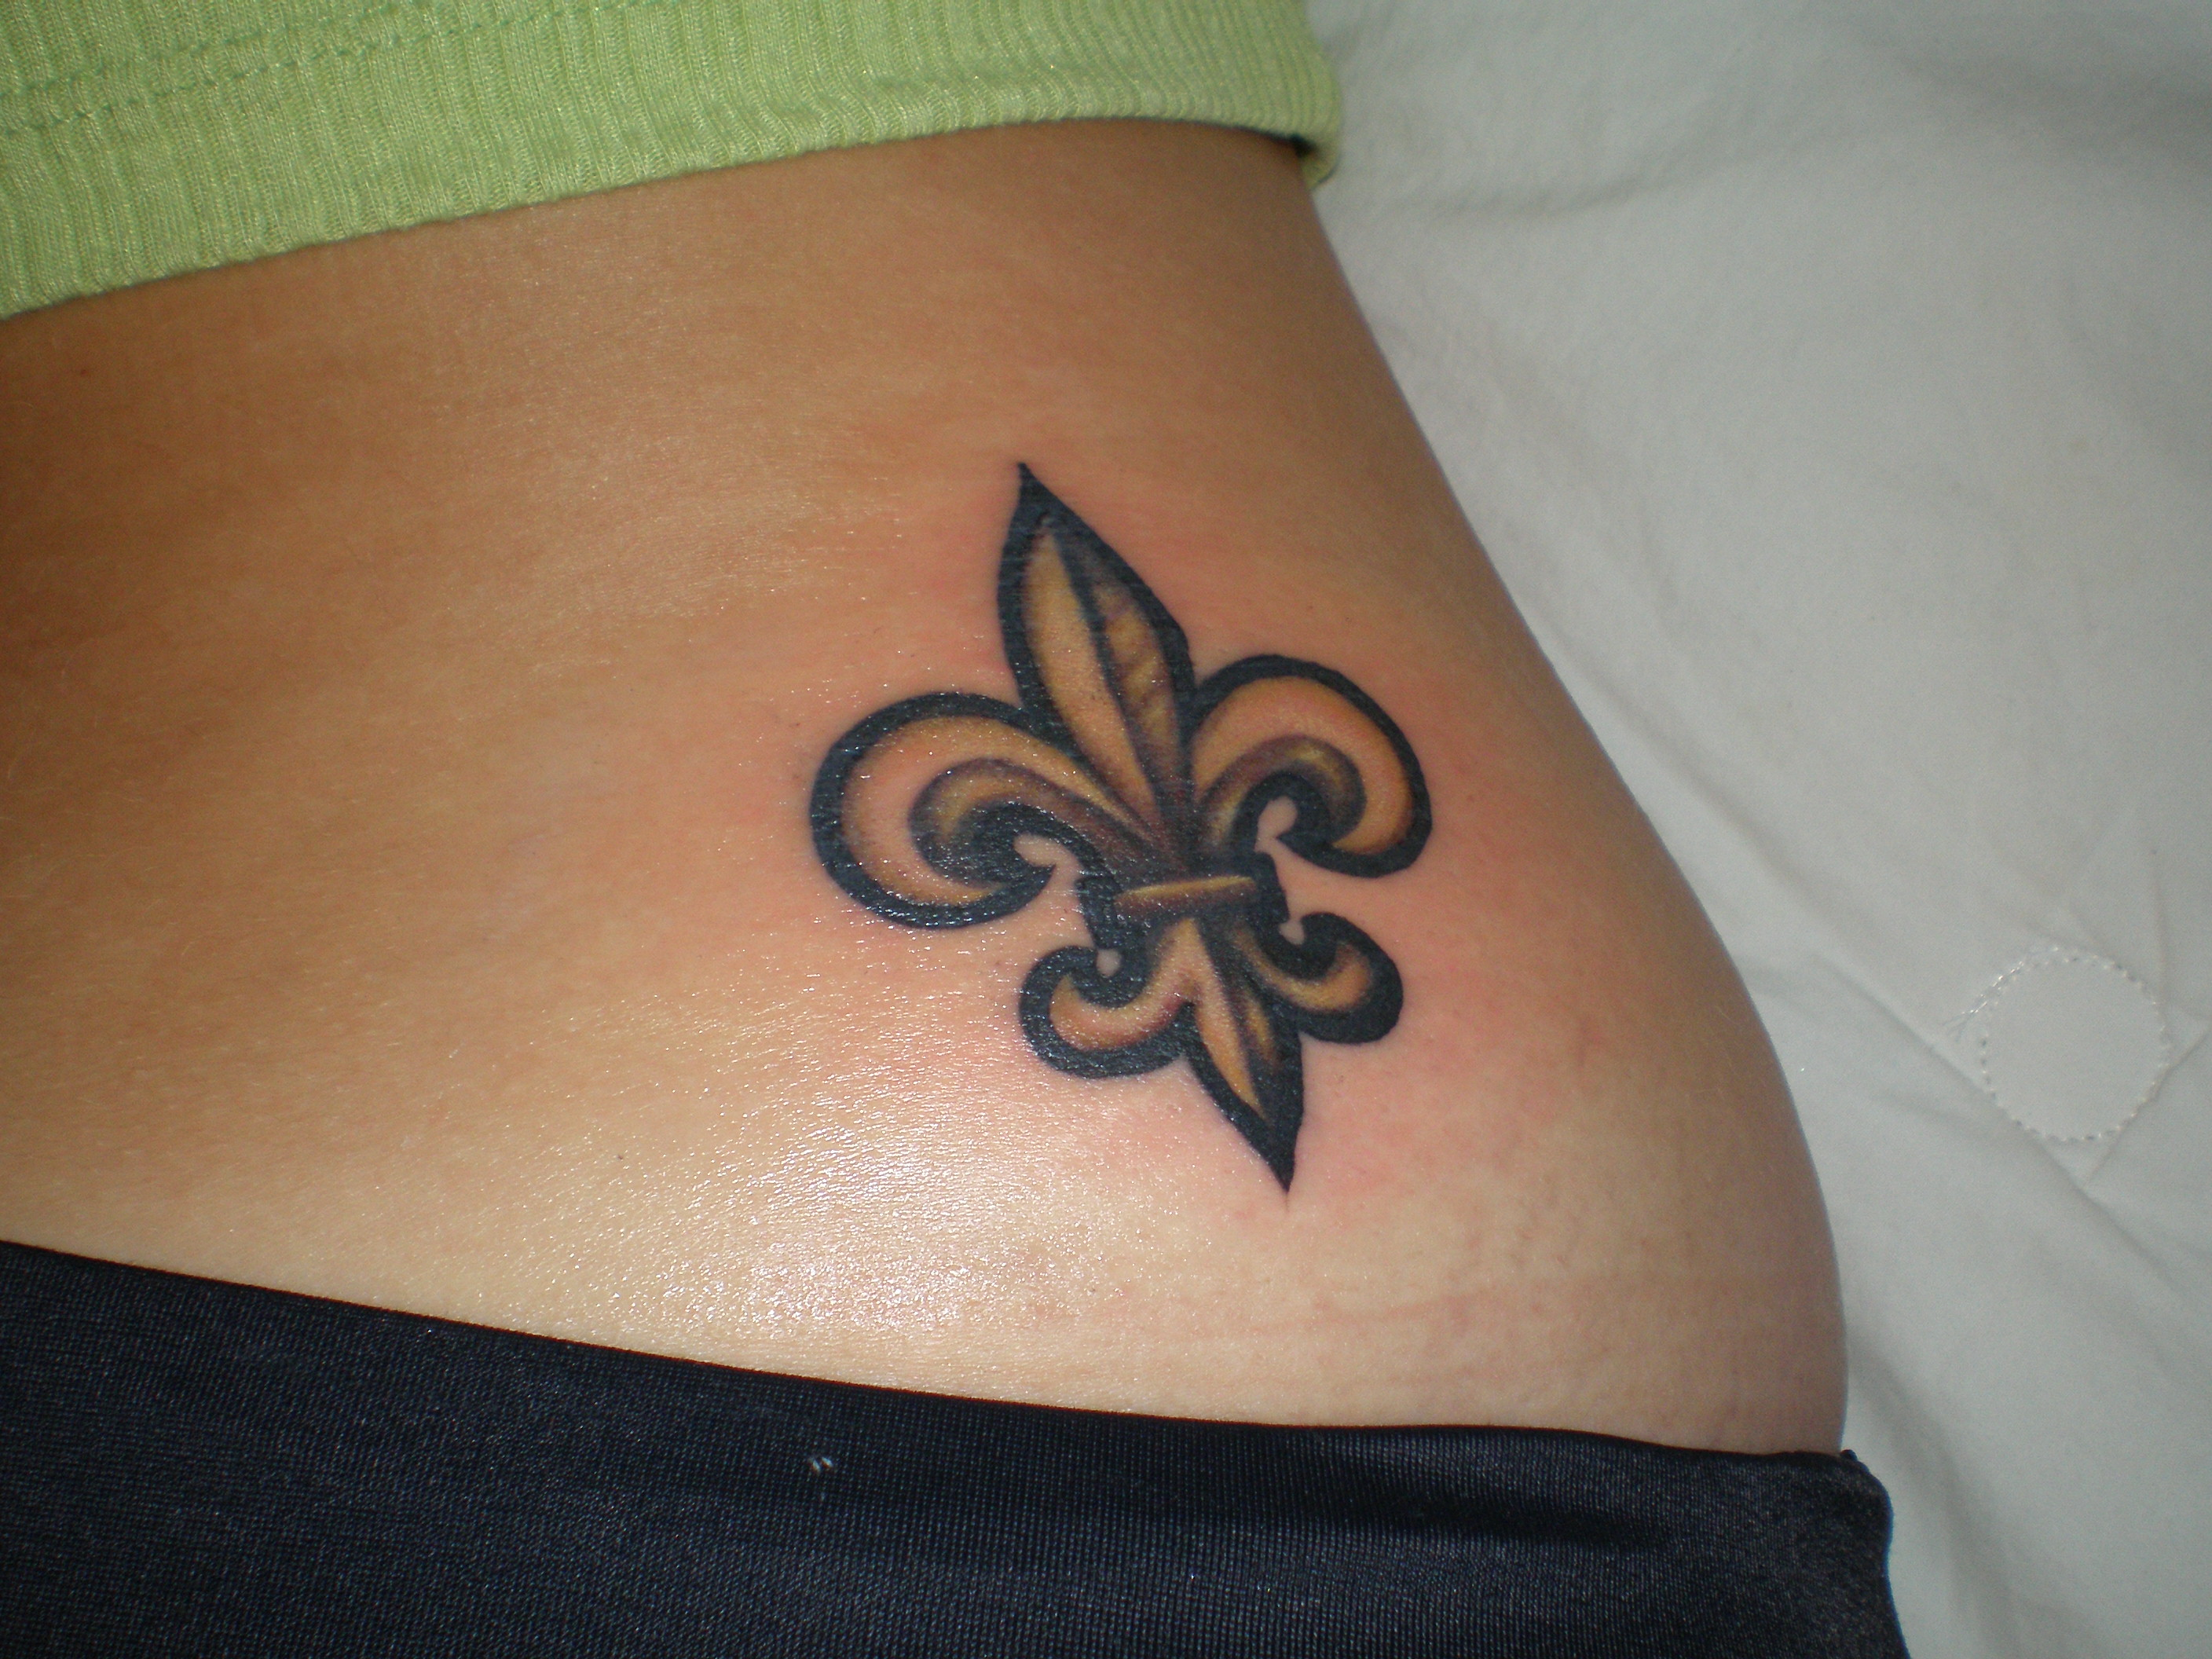 43 fleur de lis tattoos with symbolic meanings and representations swipe leftright to see more buycottarizona Images